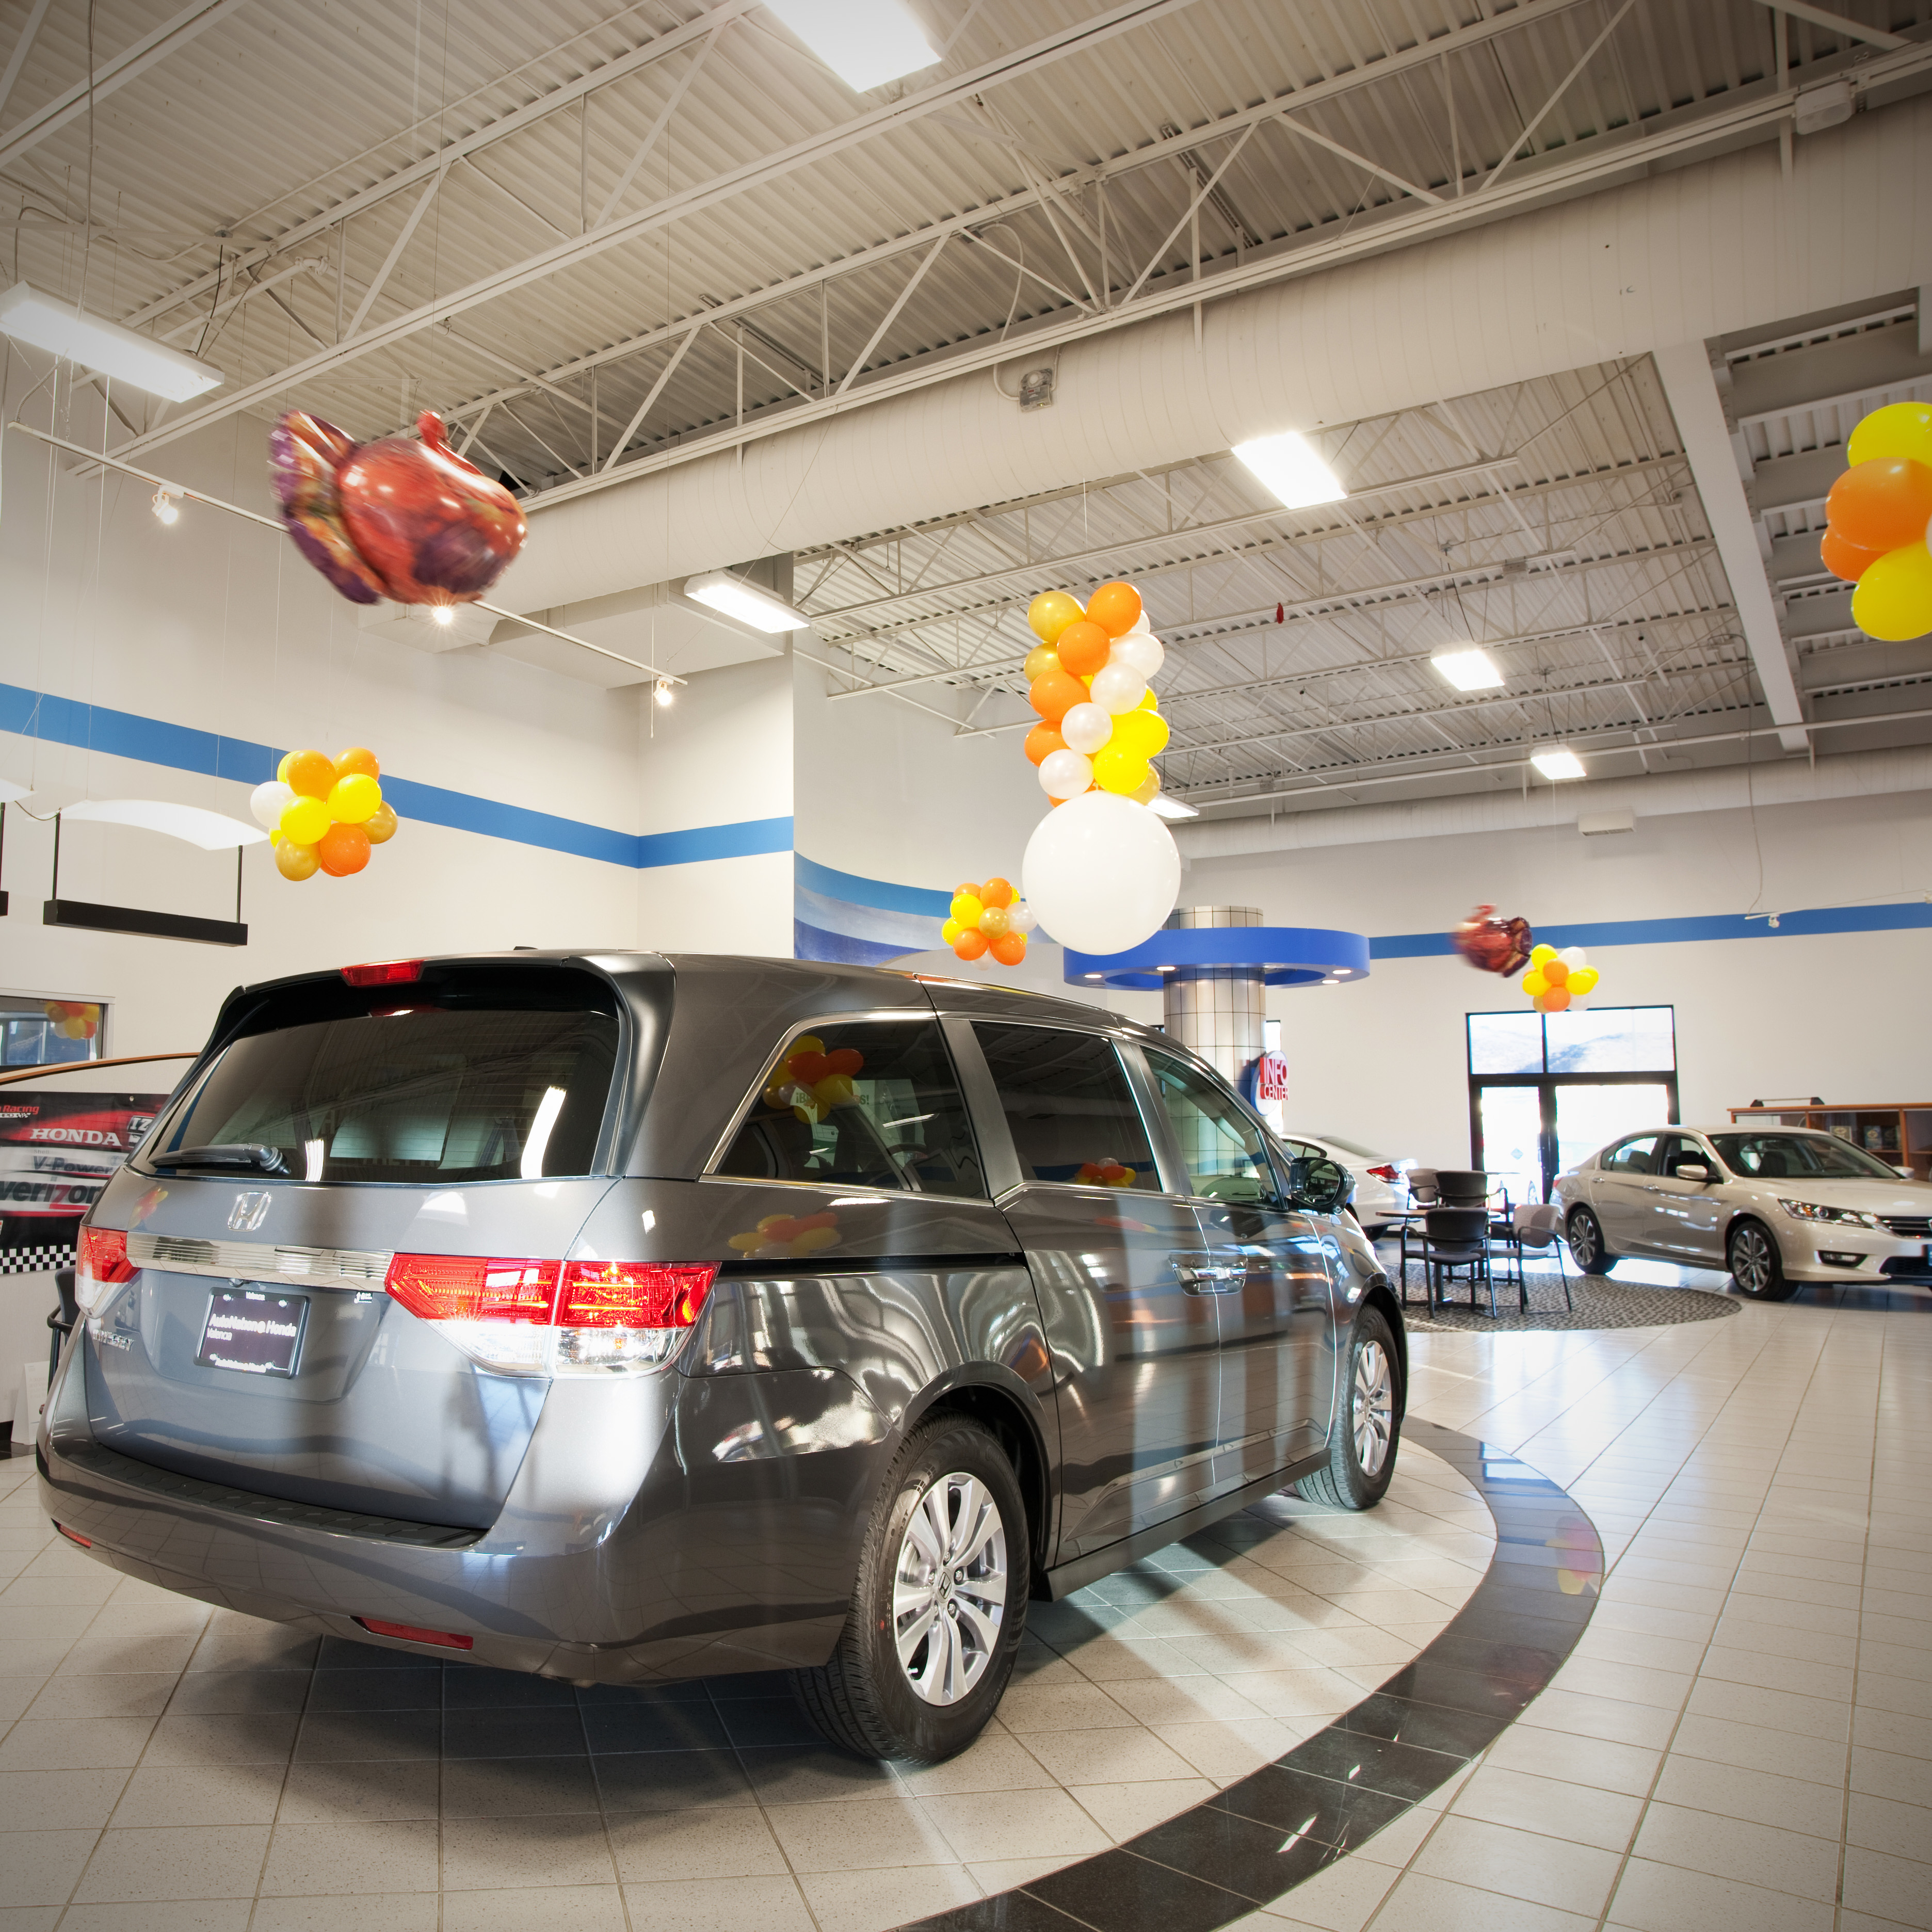 Nissan Car Dealerships Near Me: AutoNation Honda Valencia Coupons Near Me In Valencia